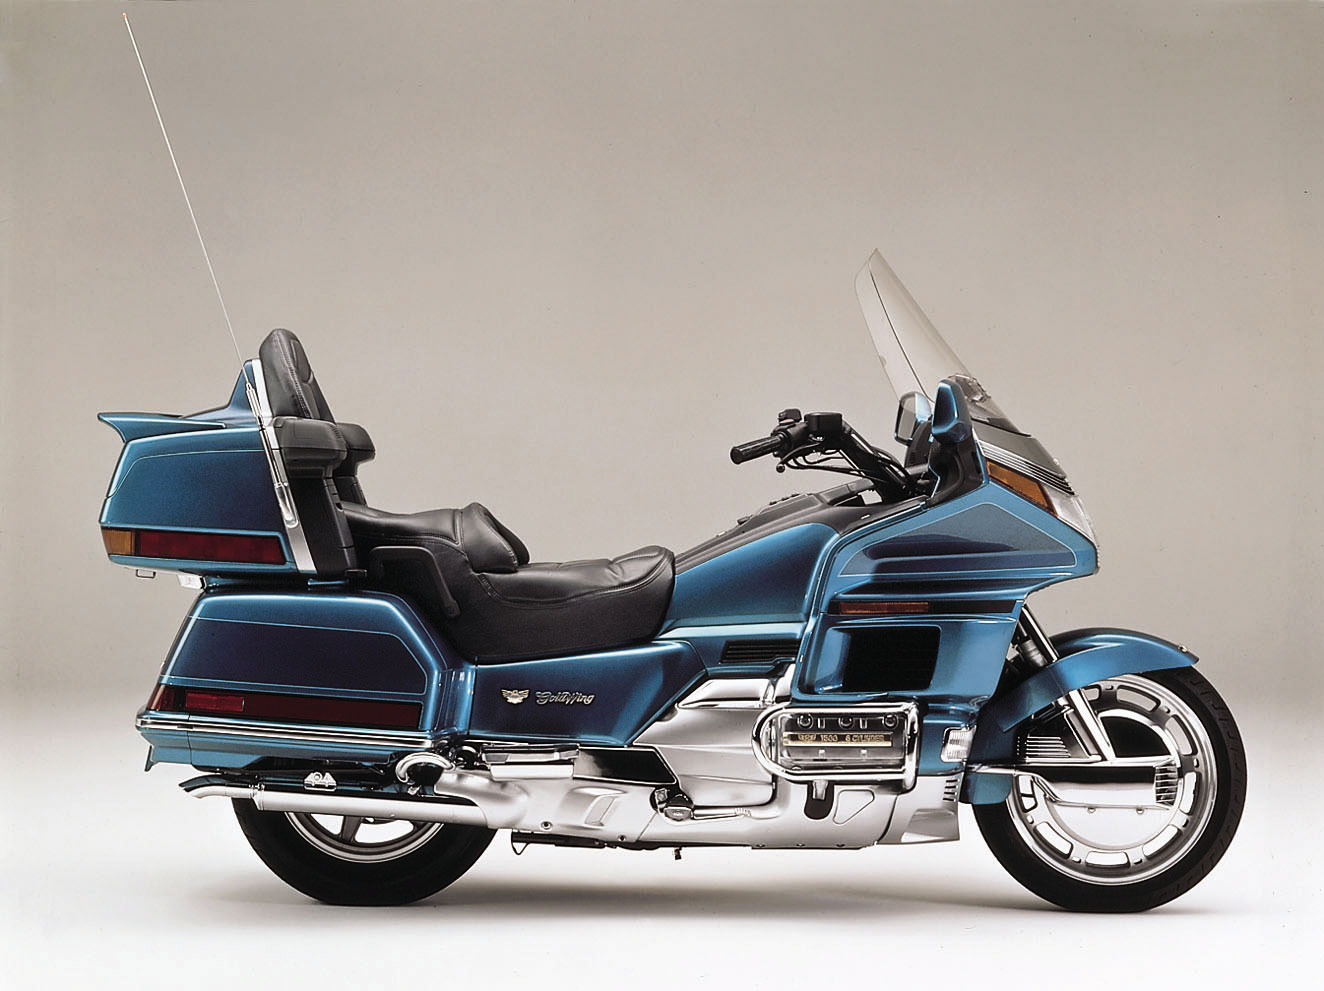 1998 honda gl 1500 se gold wing pics specs and. Black Bedroom Furniture Sets. Home Design Ideas